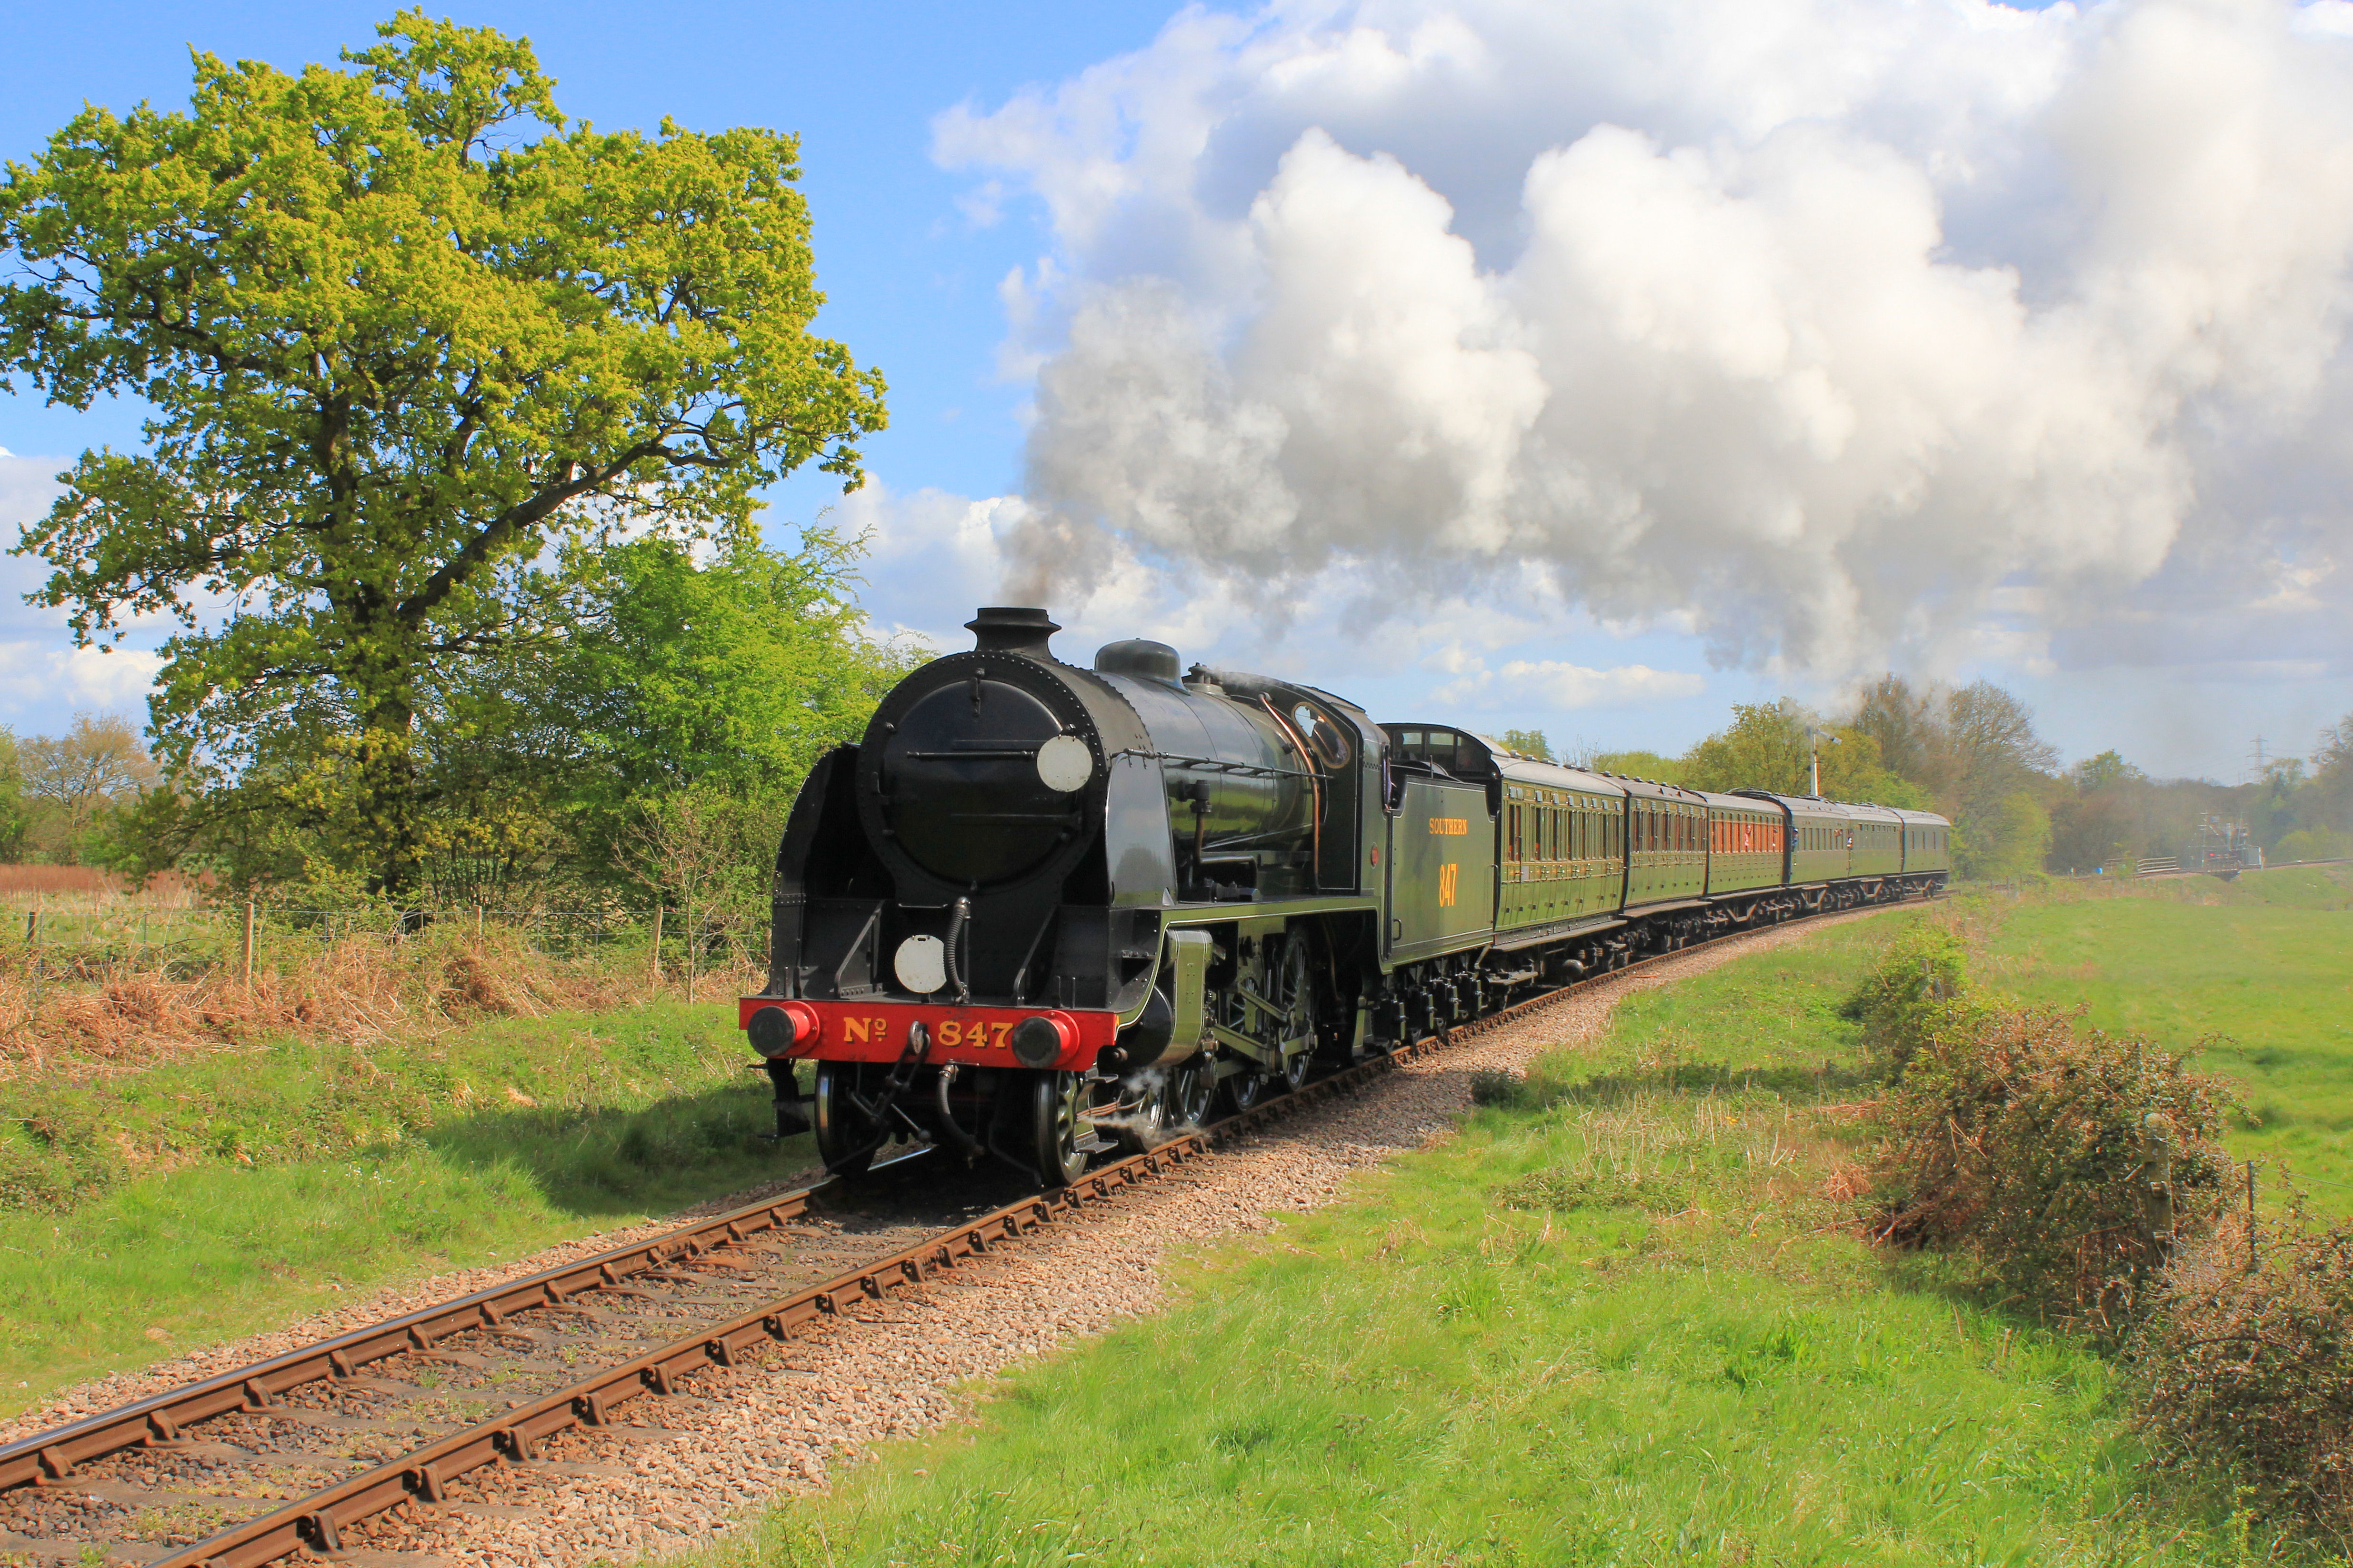 bluebell_railway_publicity_photo_peter_edwards_may2020_4941